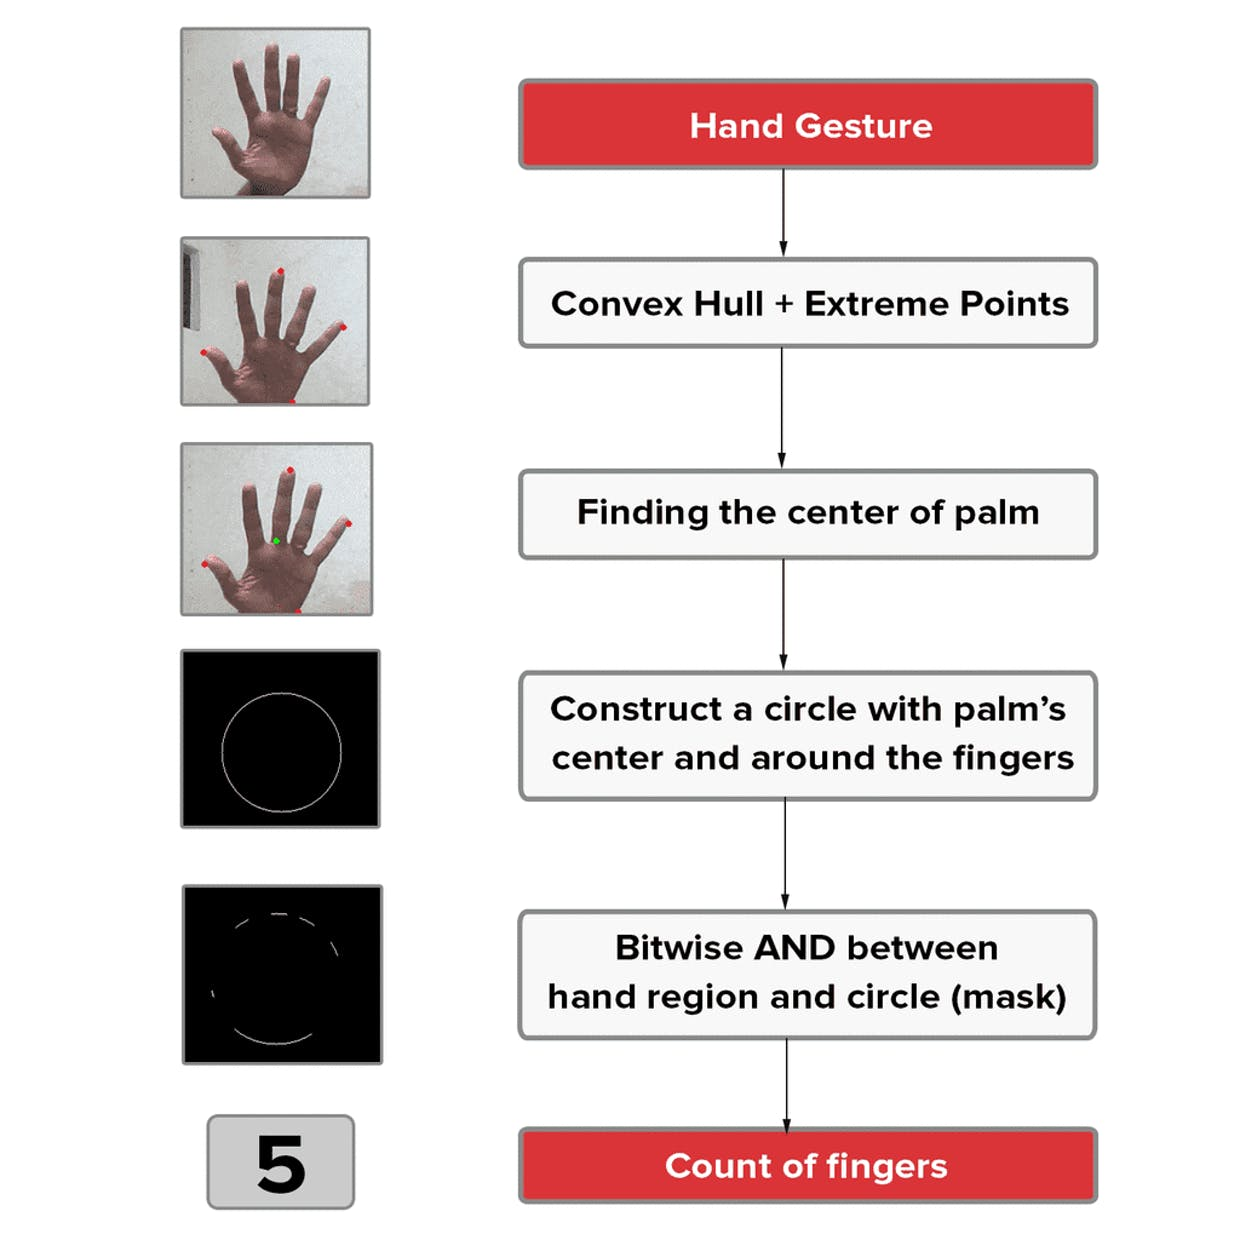 Figure 4. Hand-Gesture Recognition algorithm to count the fingers